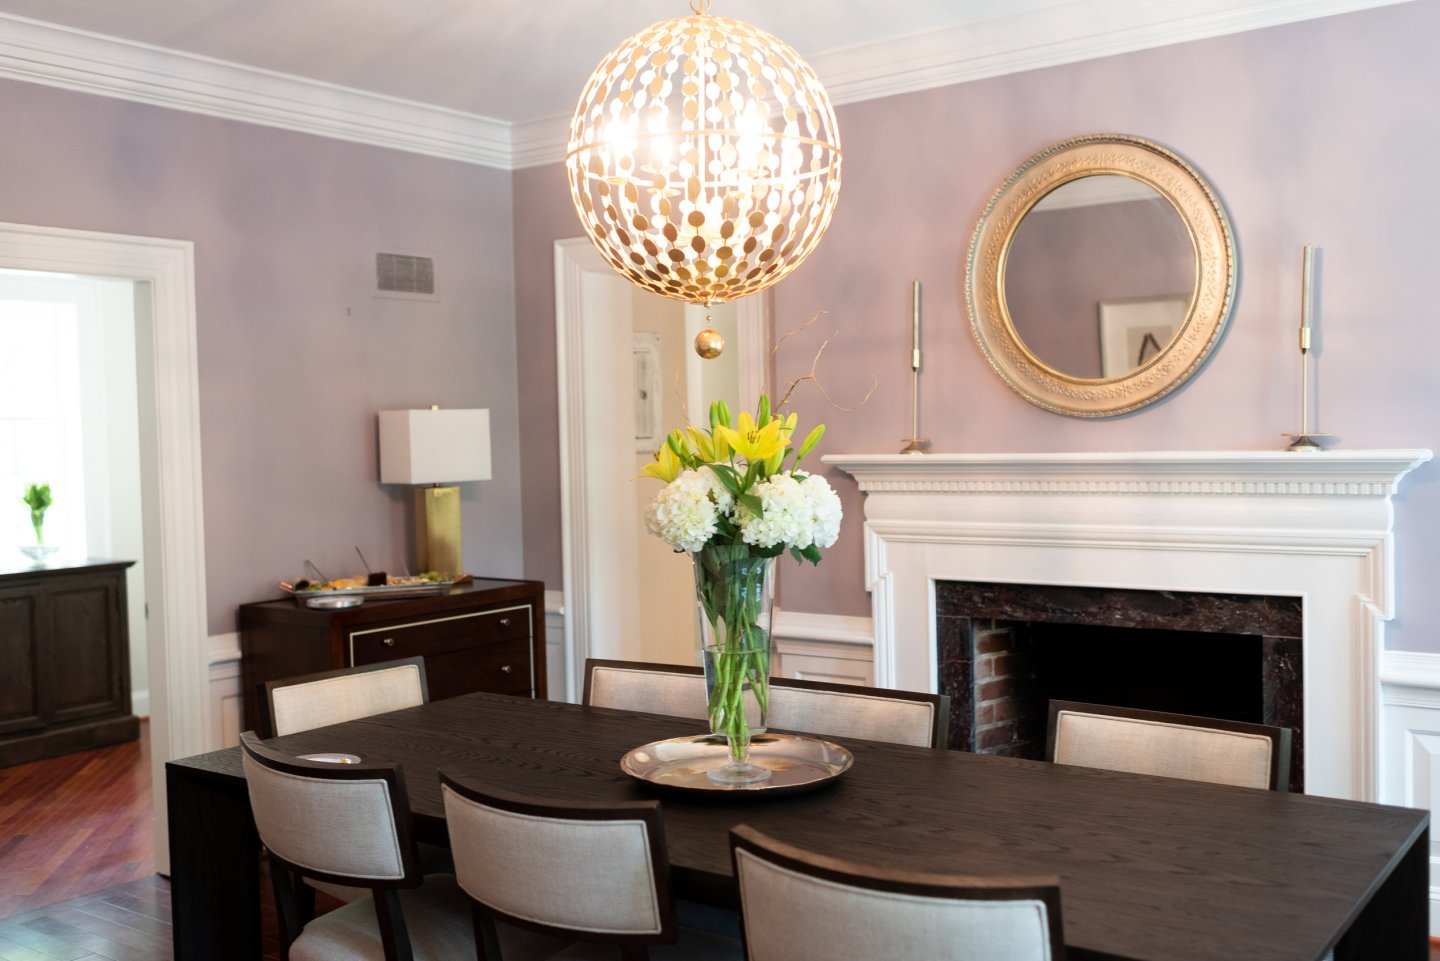 diningroomshot Black-Owned Bed & Breakfast in Maryland: How to Host an Event in an Intimate Venue